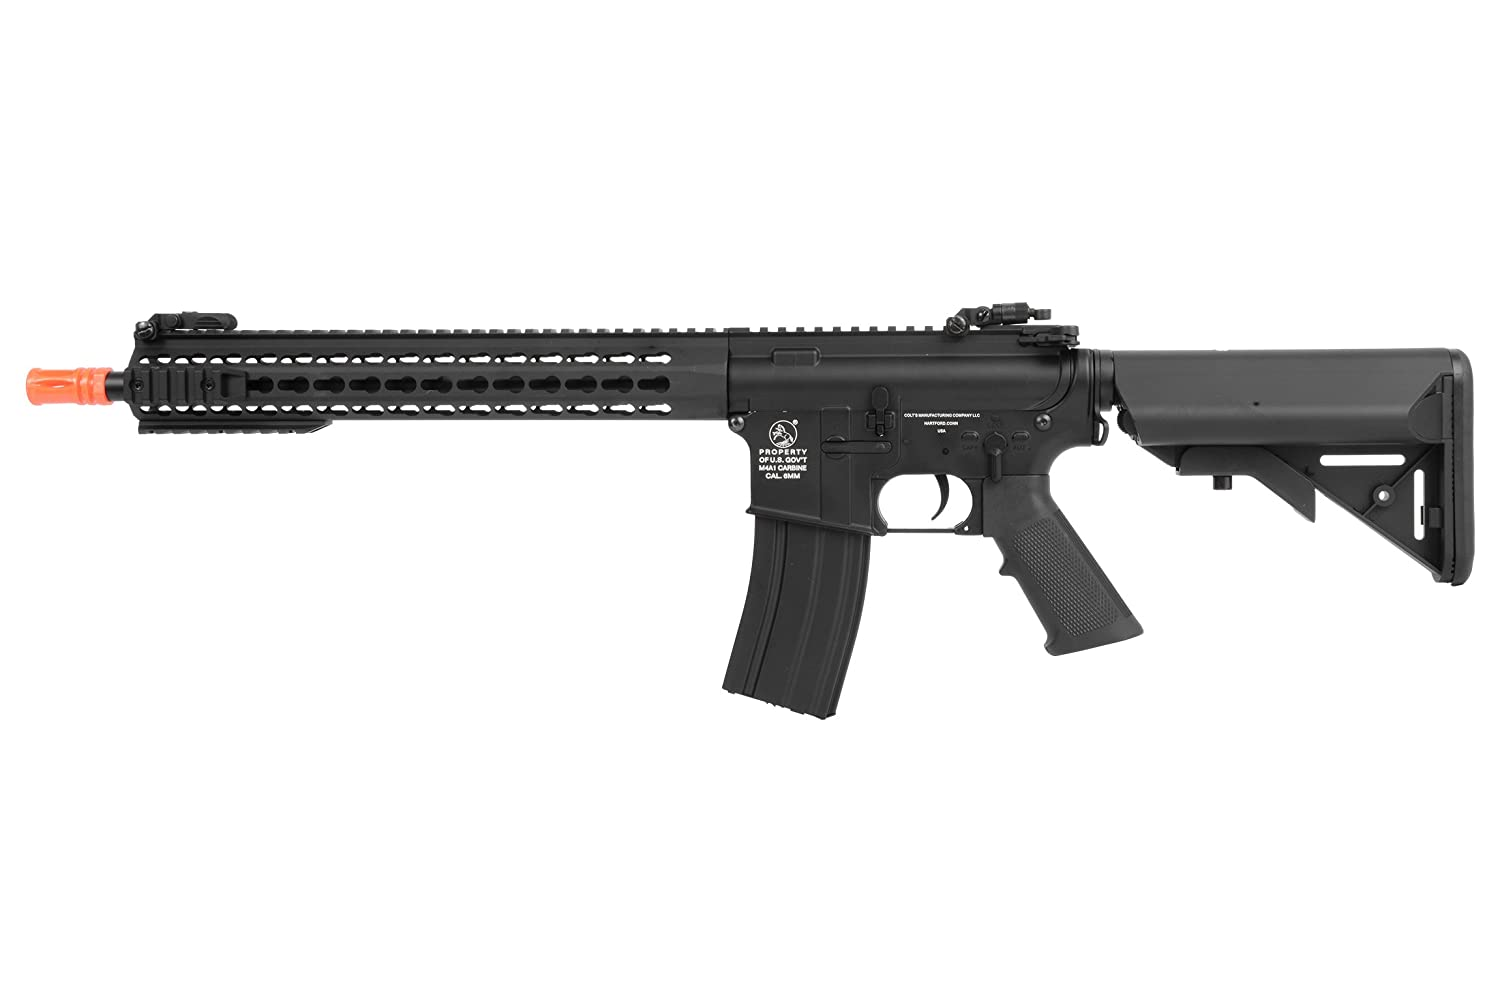 Amazon.com : Soft Air COLT M4 KeyMod Automatic Electric Airsoft Gun :  Sports & Outdoors